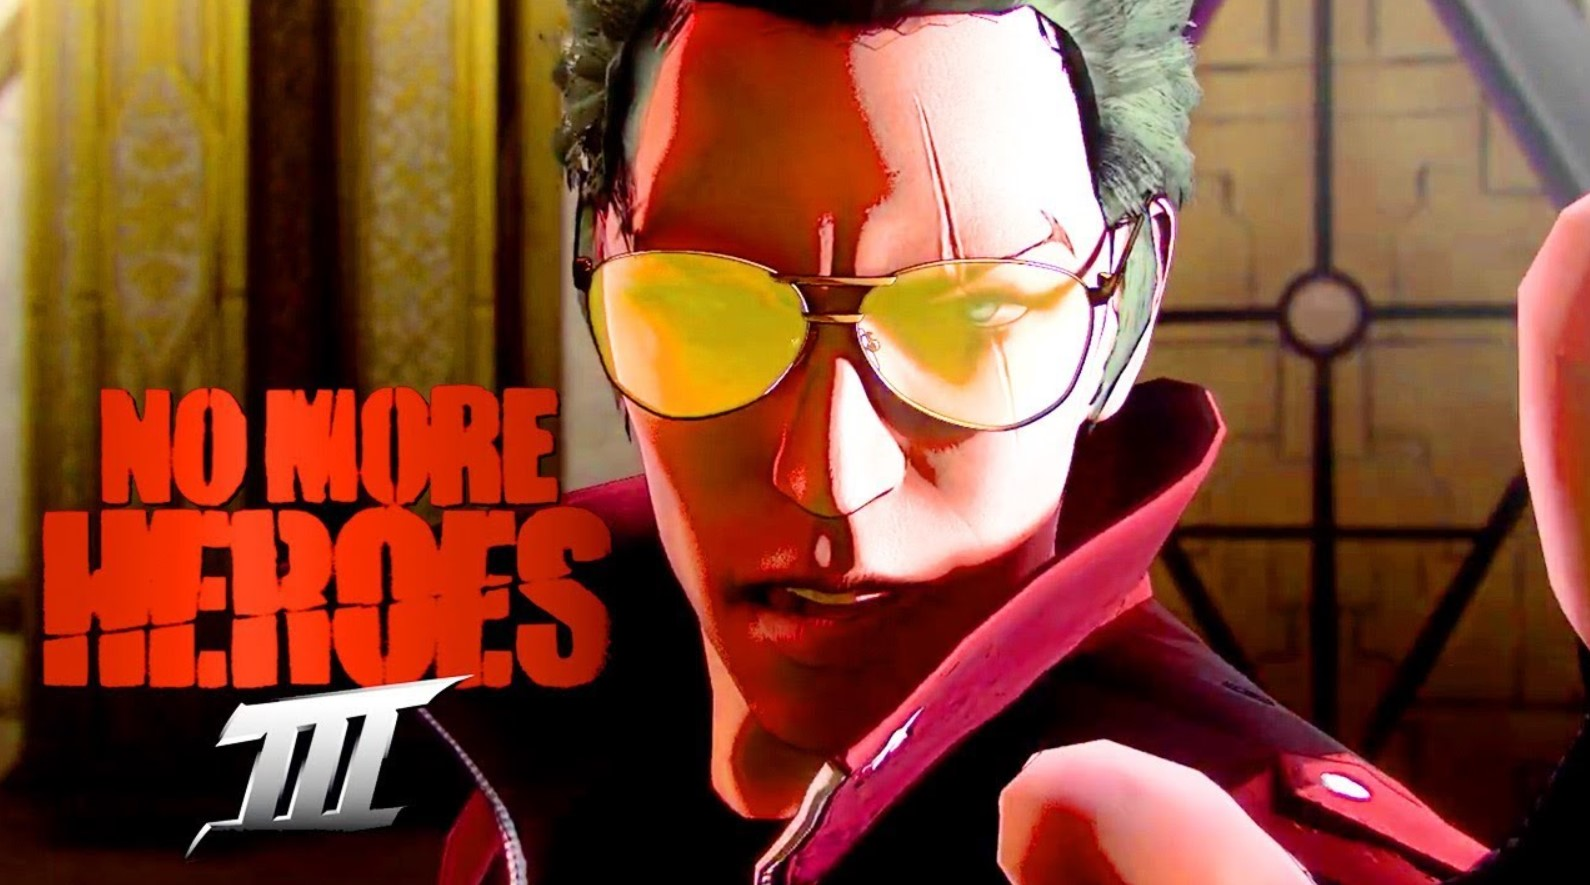 No more heroes 3 PC Full Version Free Game Download